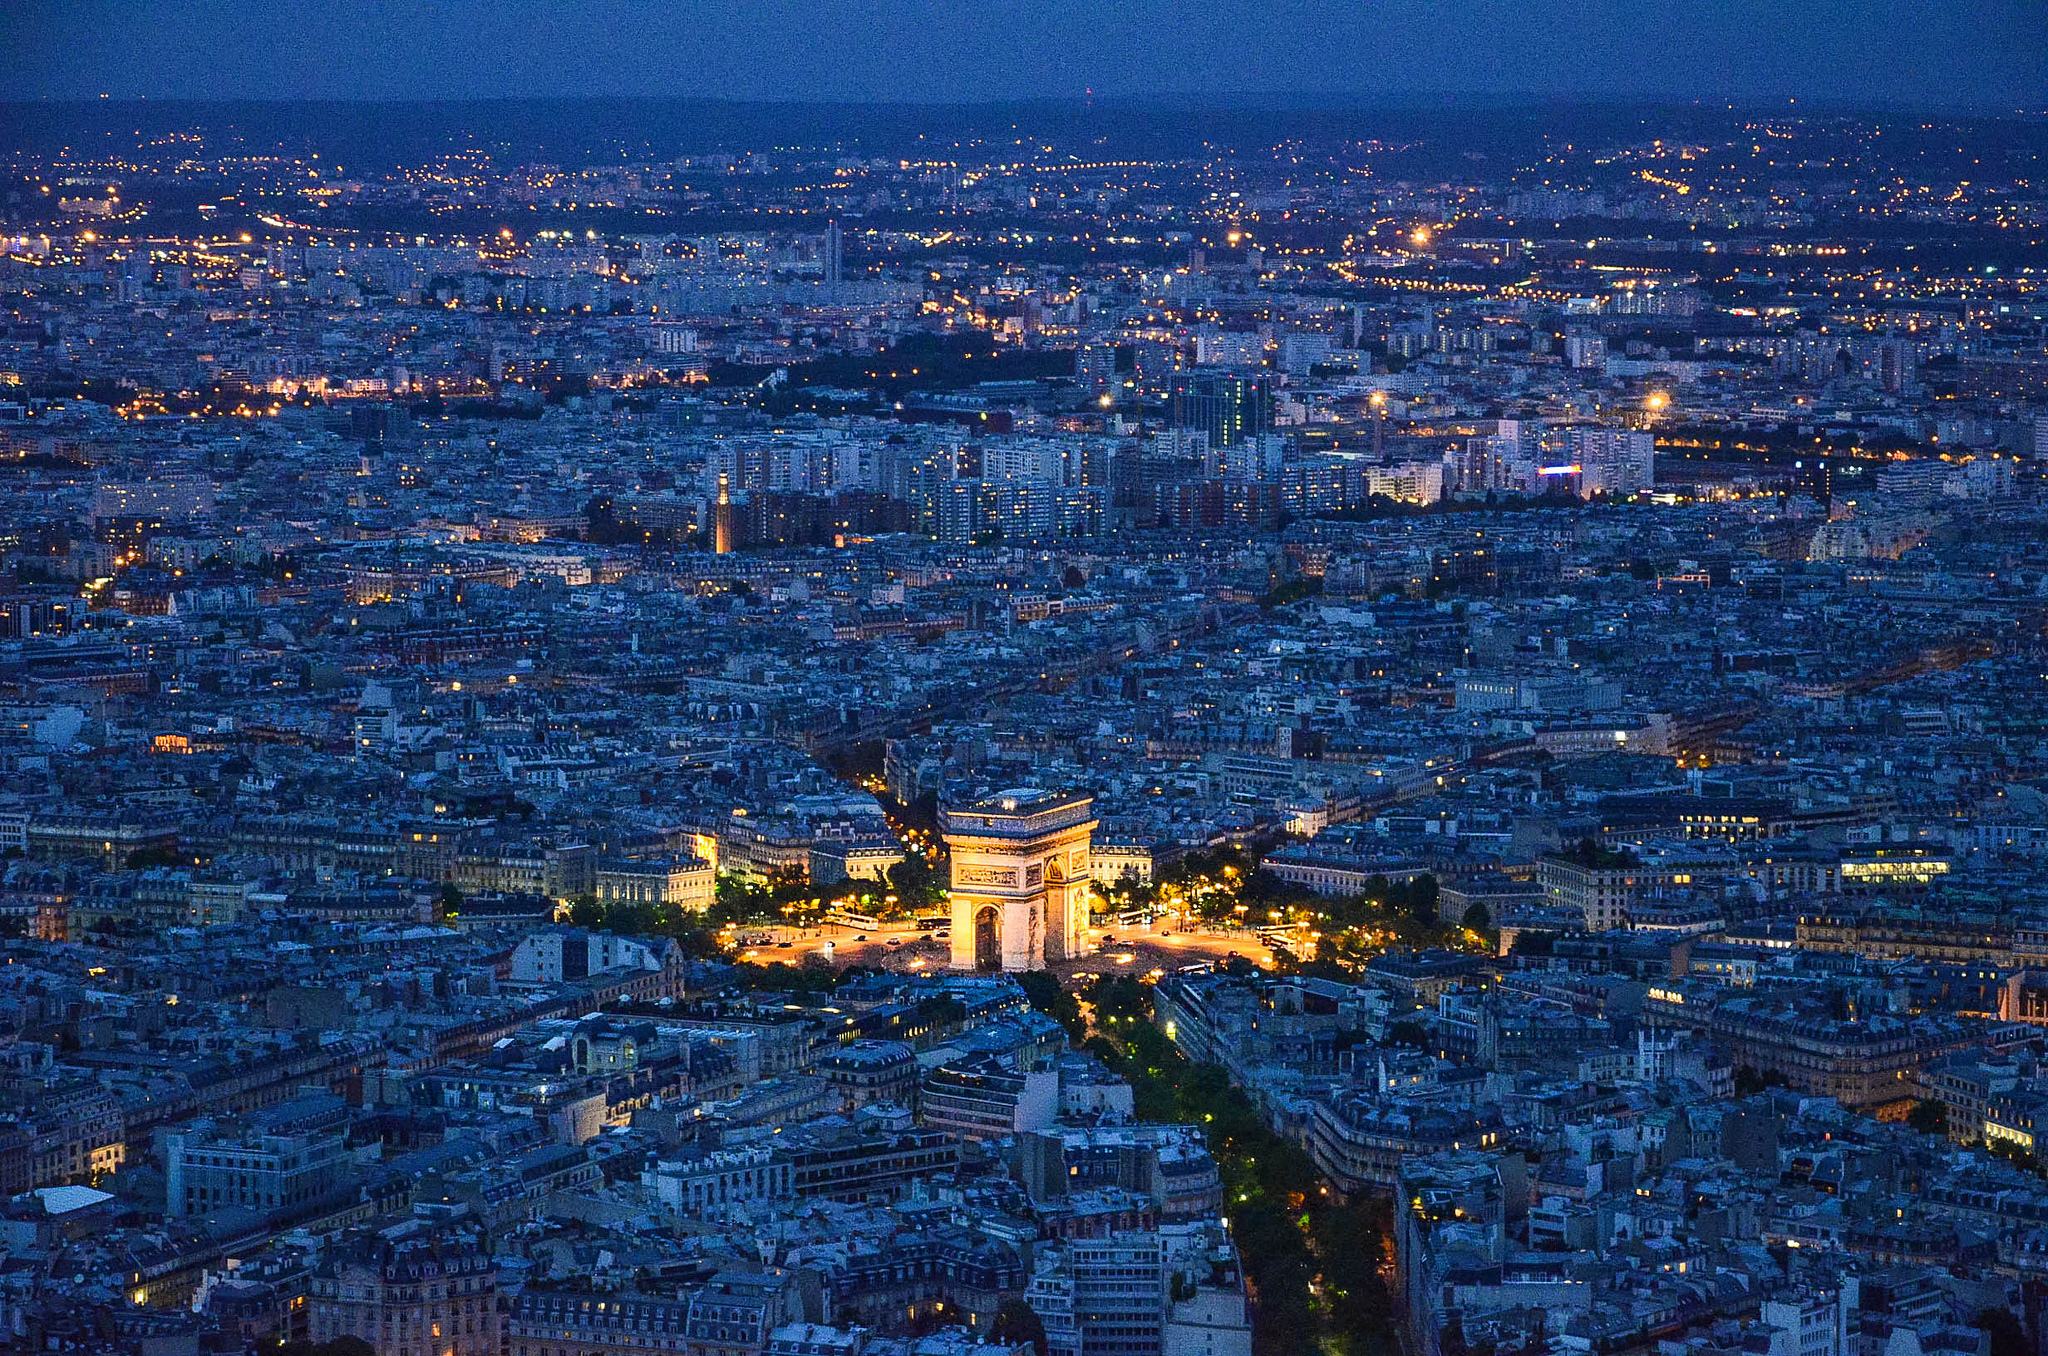 50 must-see attractions in Paris